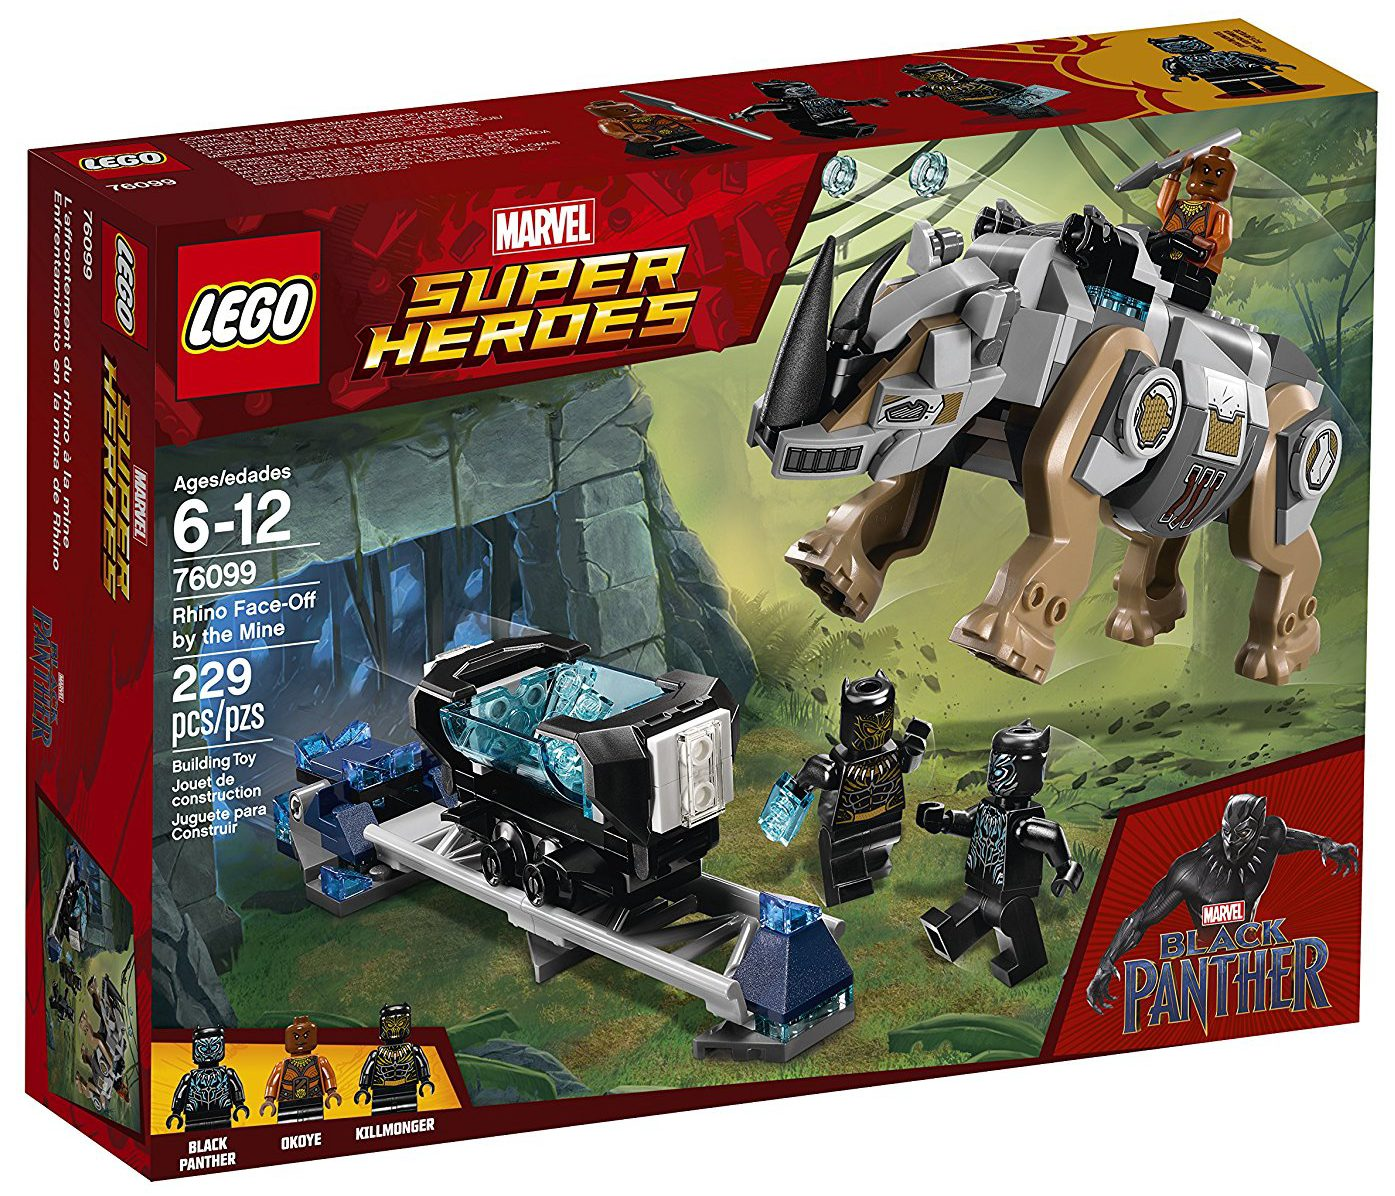 Lego Black Panther Rhino Face Off By The Mine 76099 Set Box Front